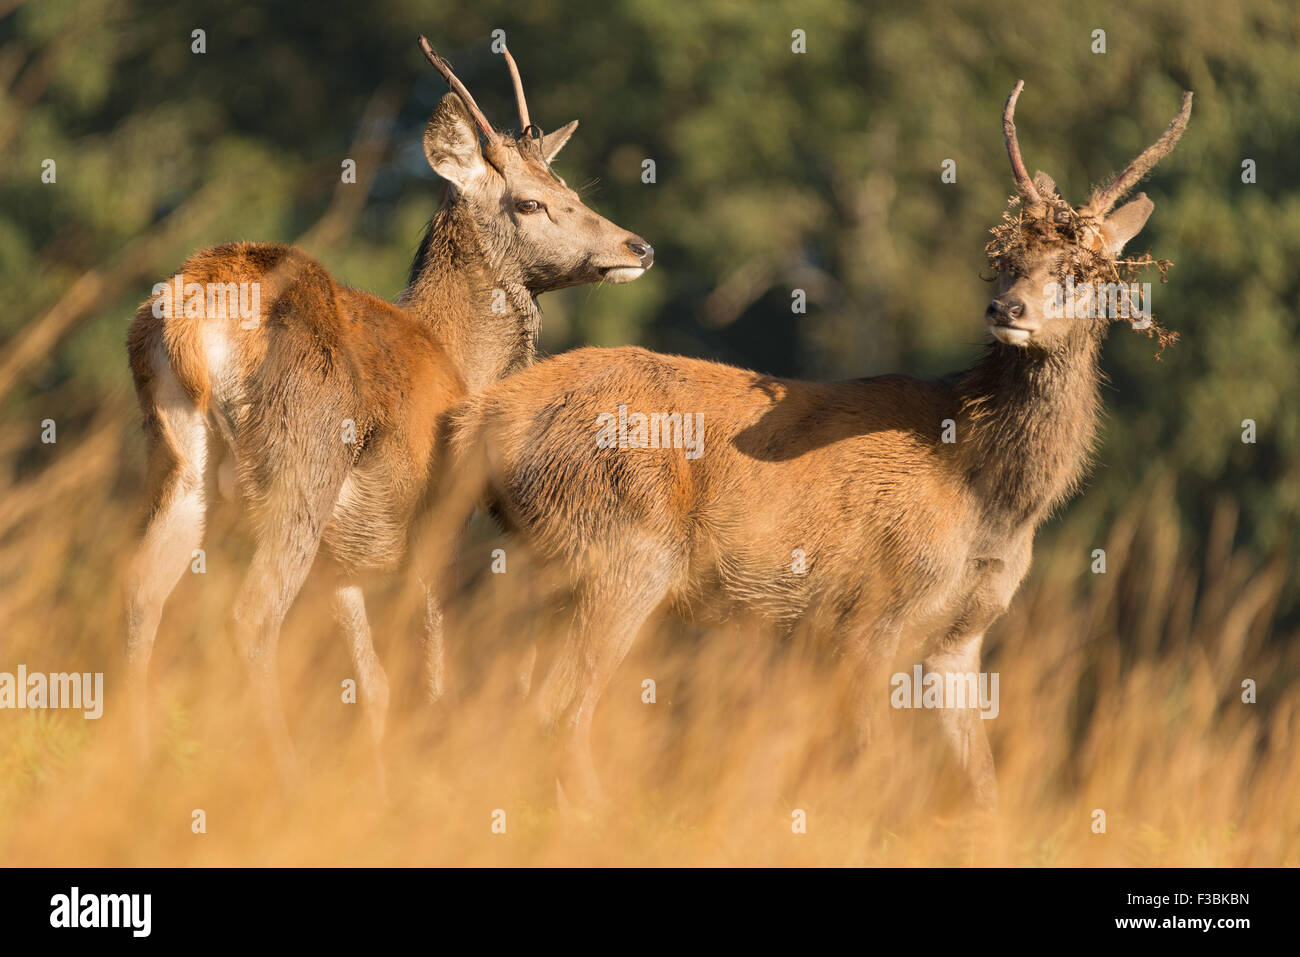 Two young red deer stags - Stock Image